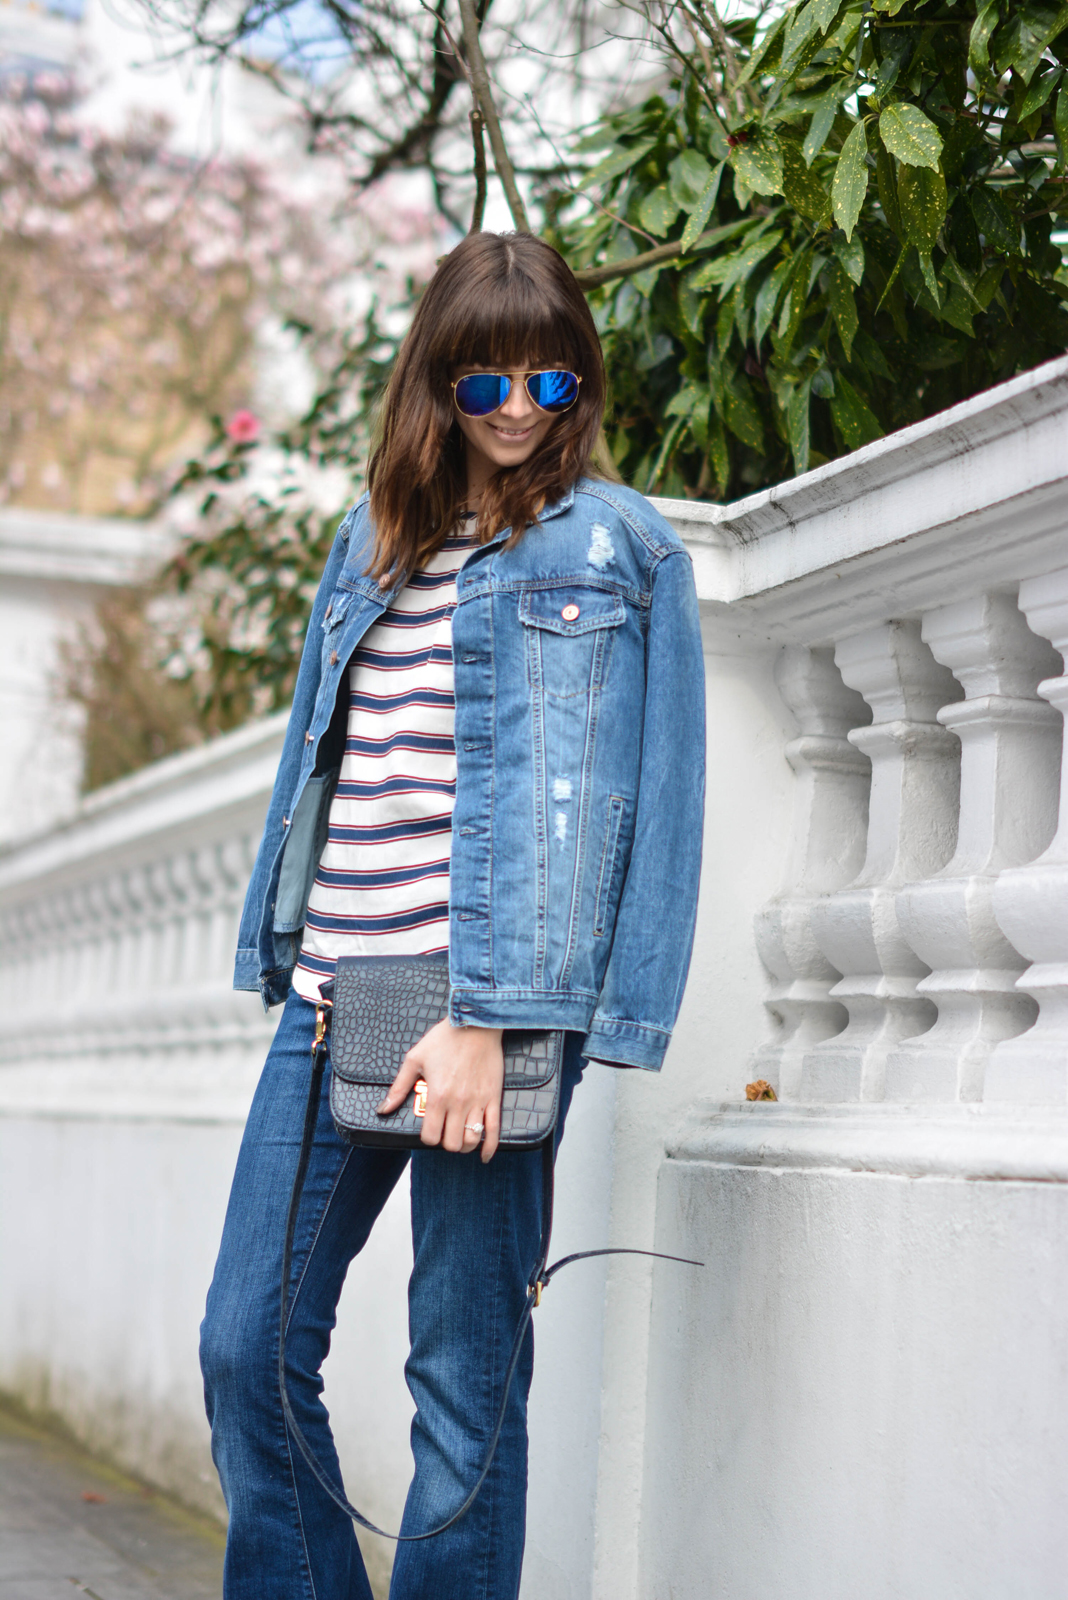 EJSTYLE - Emma Hill, Double denim, Spring outfit, flare jeans, stripe H&M top, H&M denim jacket, navy bag